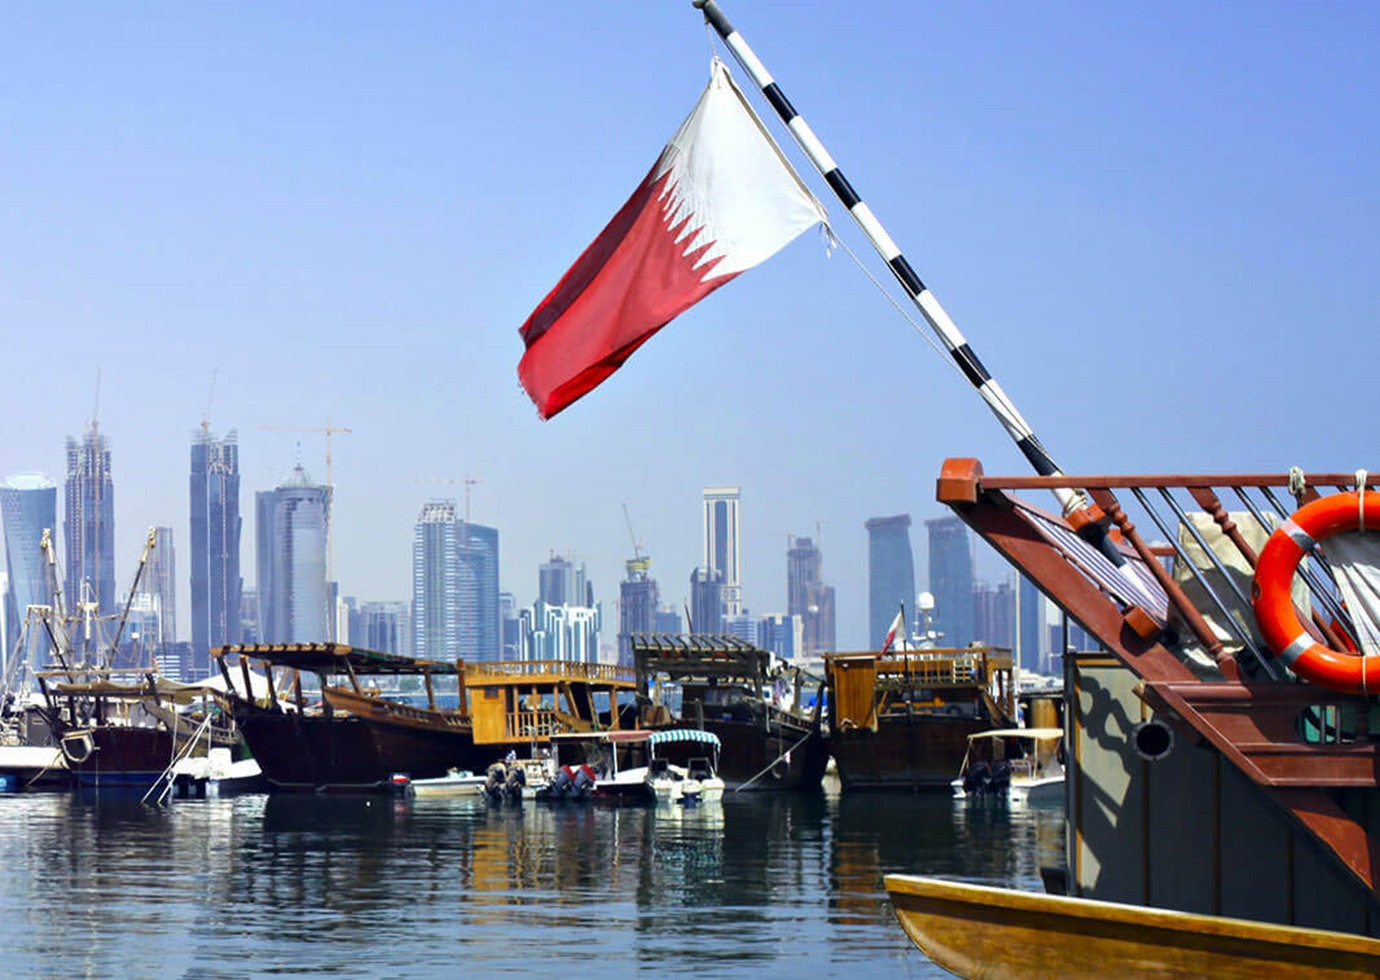 Qatar: Reforms must include the right to assembly and association